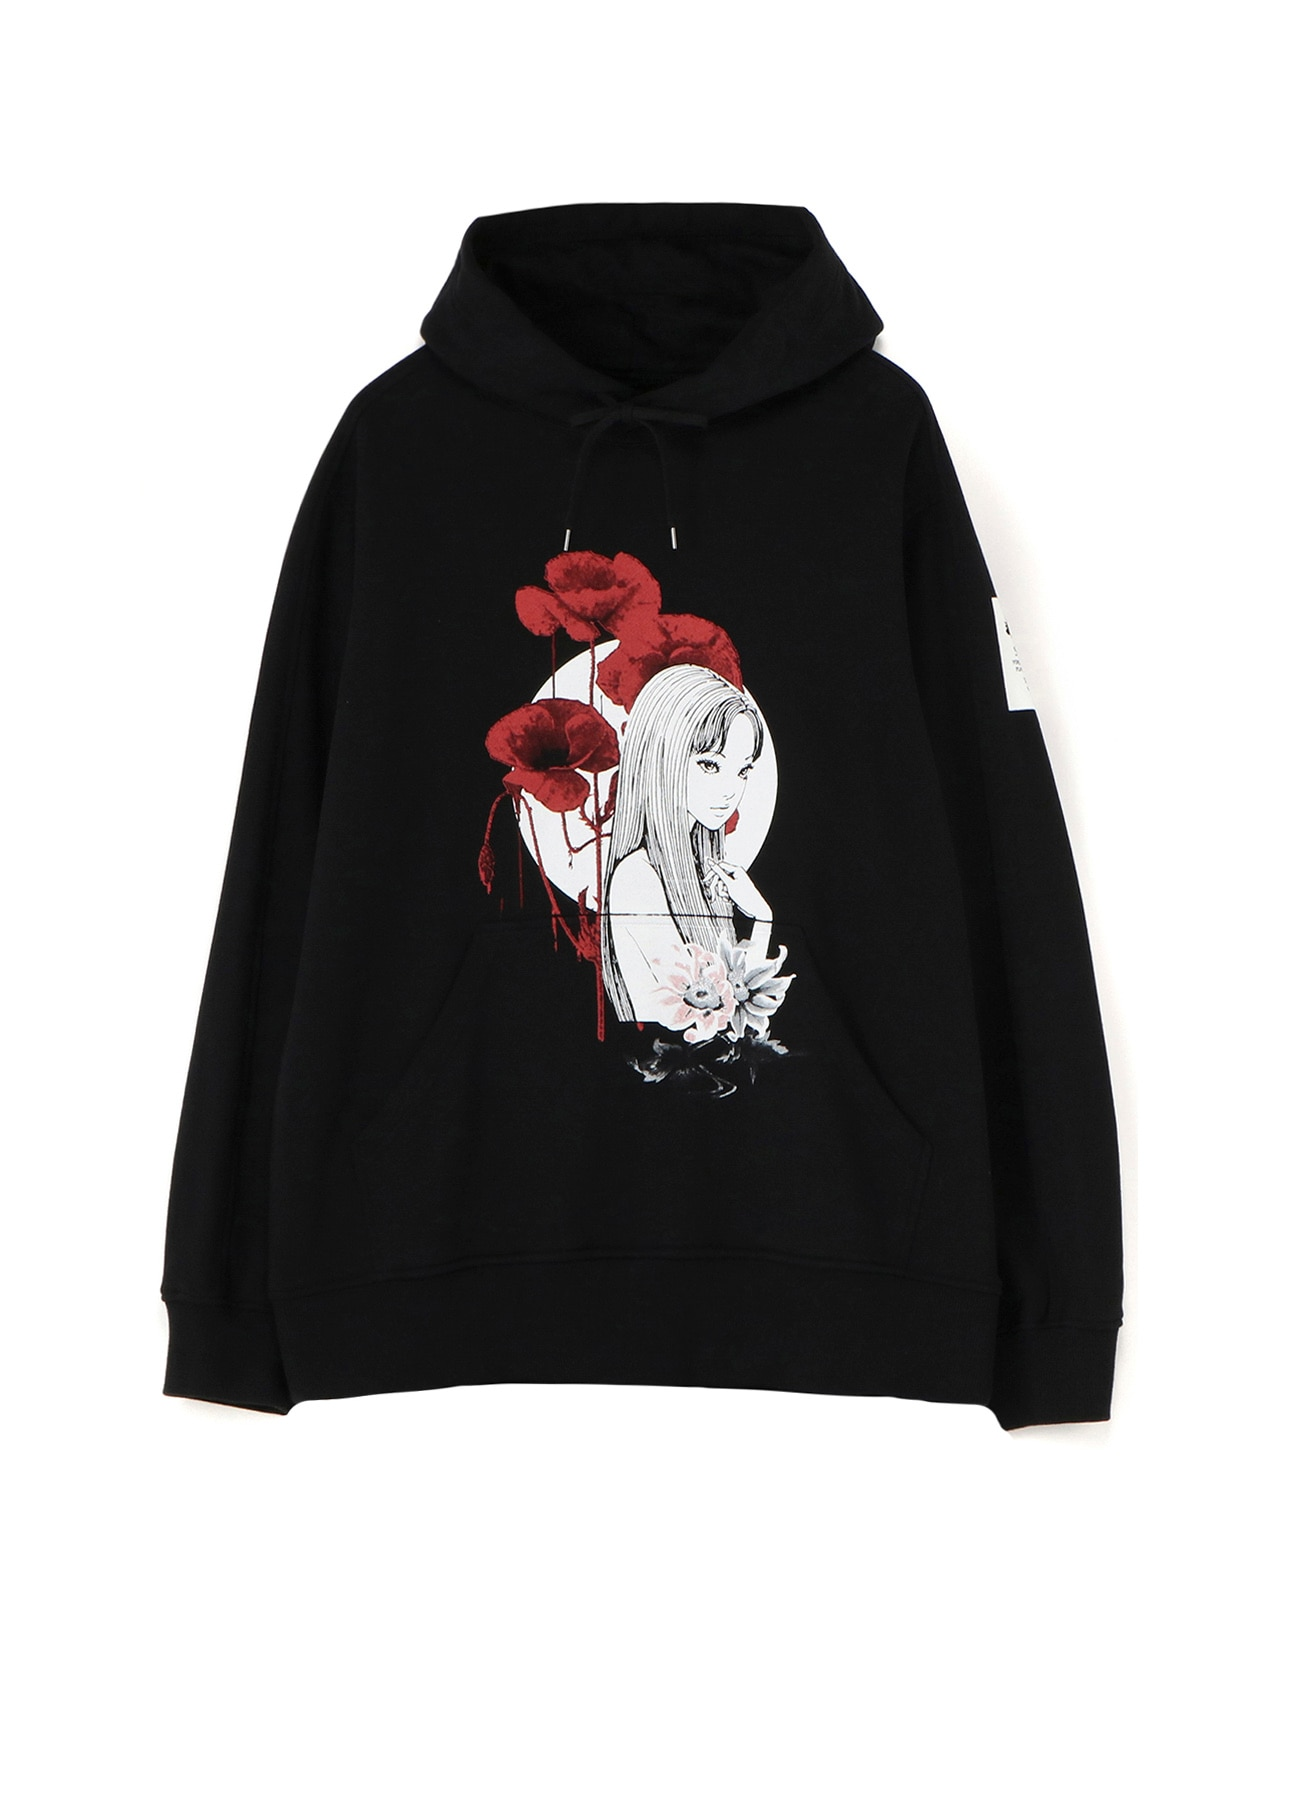 French Terry Stitch Work Tomie、 Blood and Poppy Flowers Hoodie